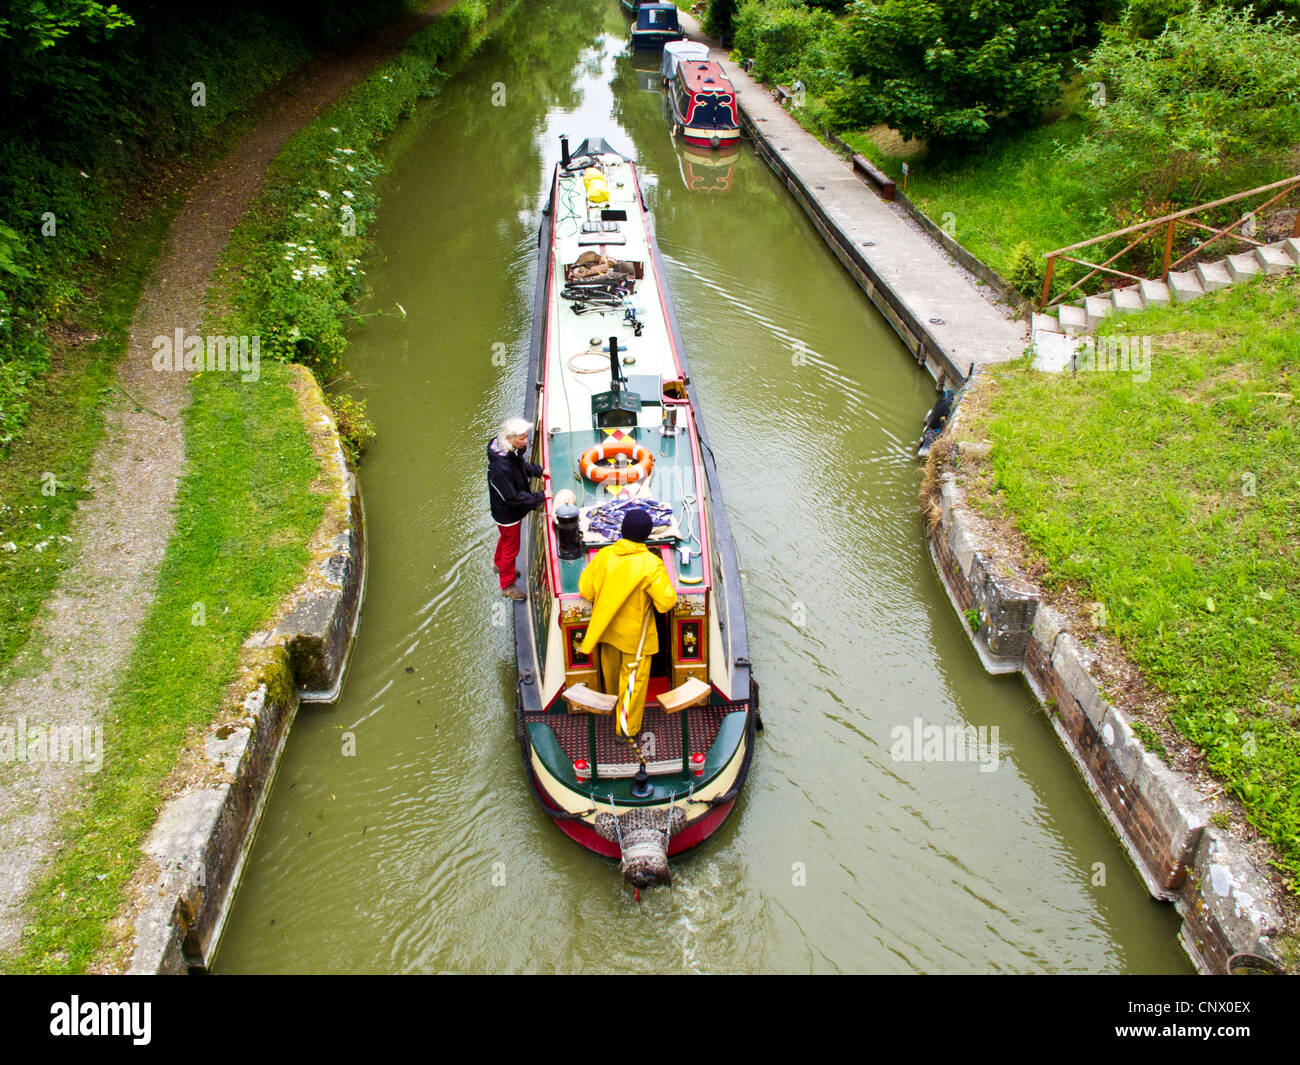 Narrowboats near Pewsey Wharf on the Kennet and Avon Canal in Wiltshire, England, UK Stock Photo